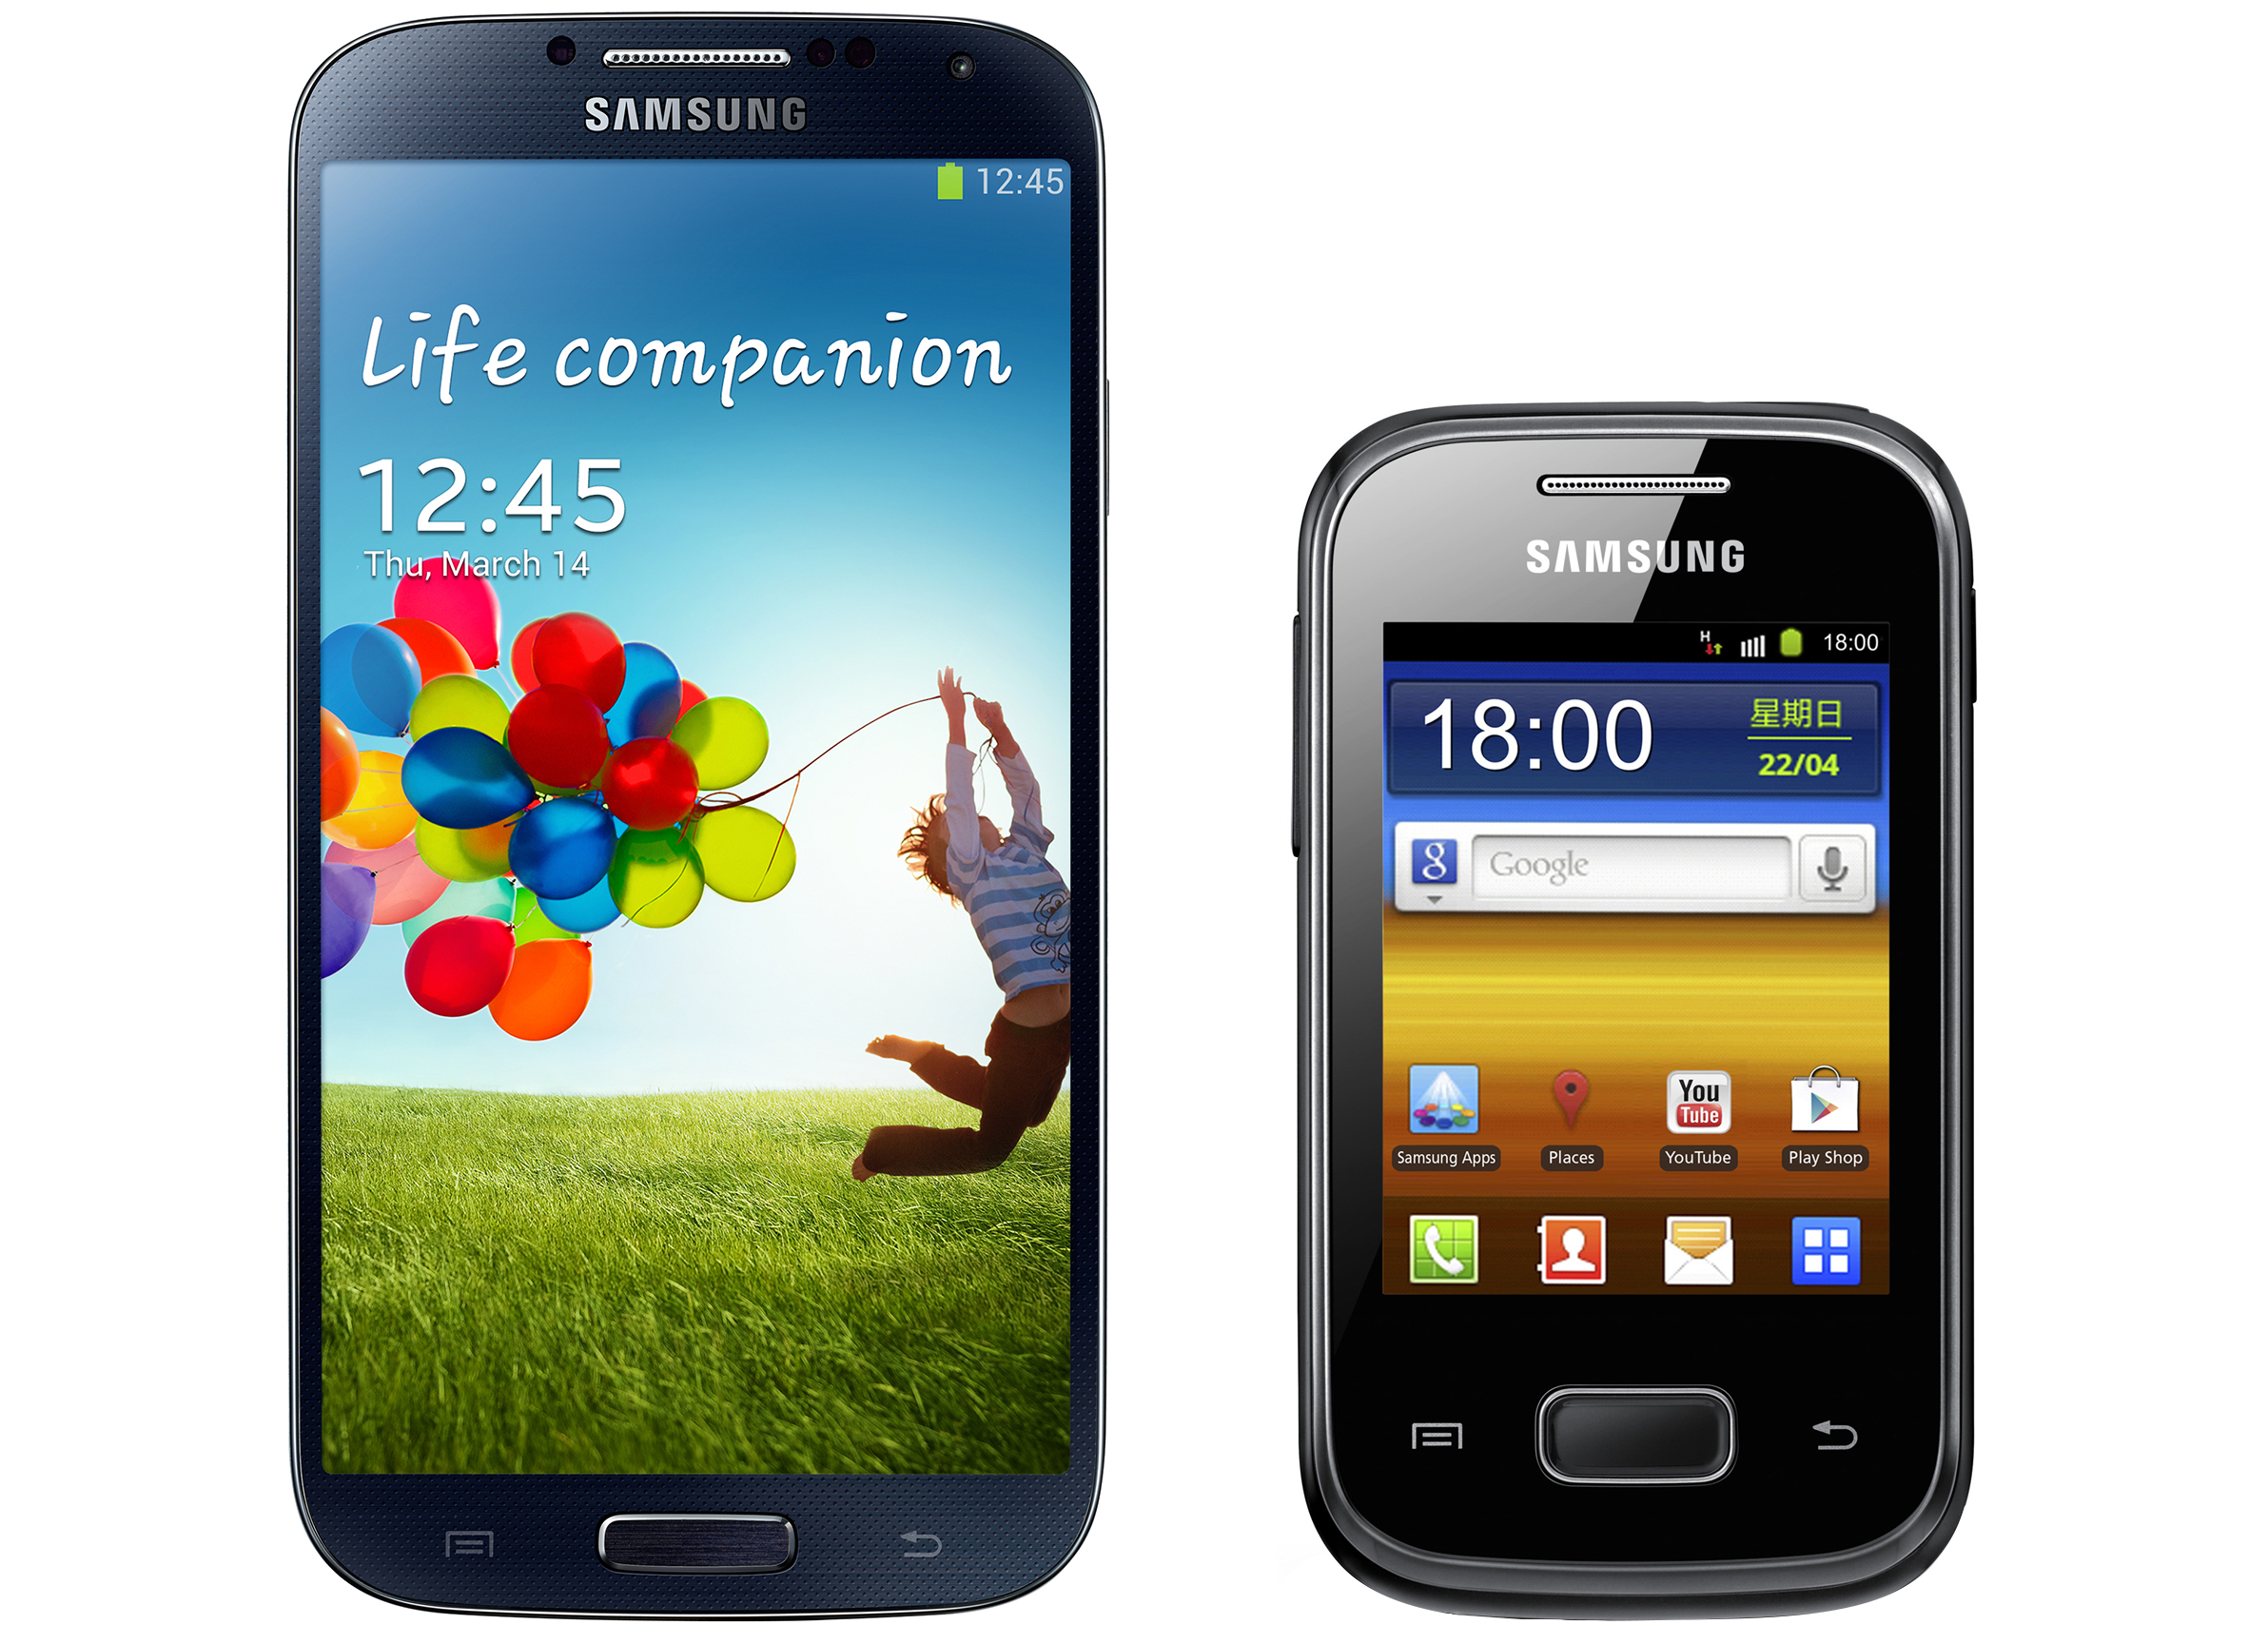 To-scale images of the Samsung Galaxy S4 (left) and a popular device in the developing, the Samsung Galaxy Pocket (right).